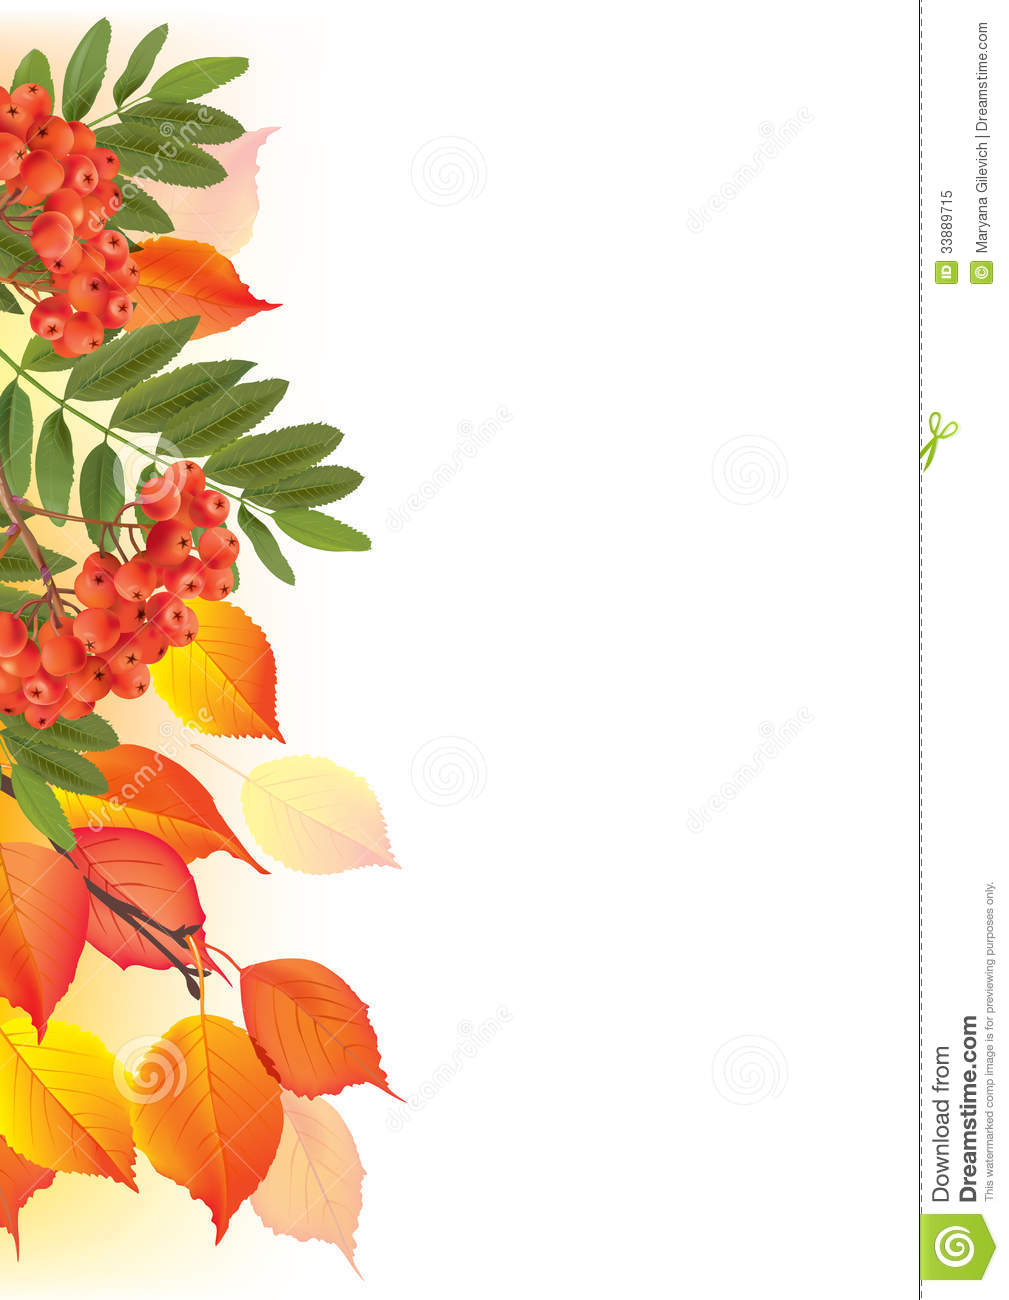 border of autumn leaves and rowan stock vector illustration of plant  harvest 33889715 Thanksgiving Day Clip Art free thanksgiving clipart borders